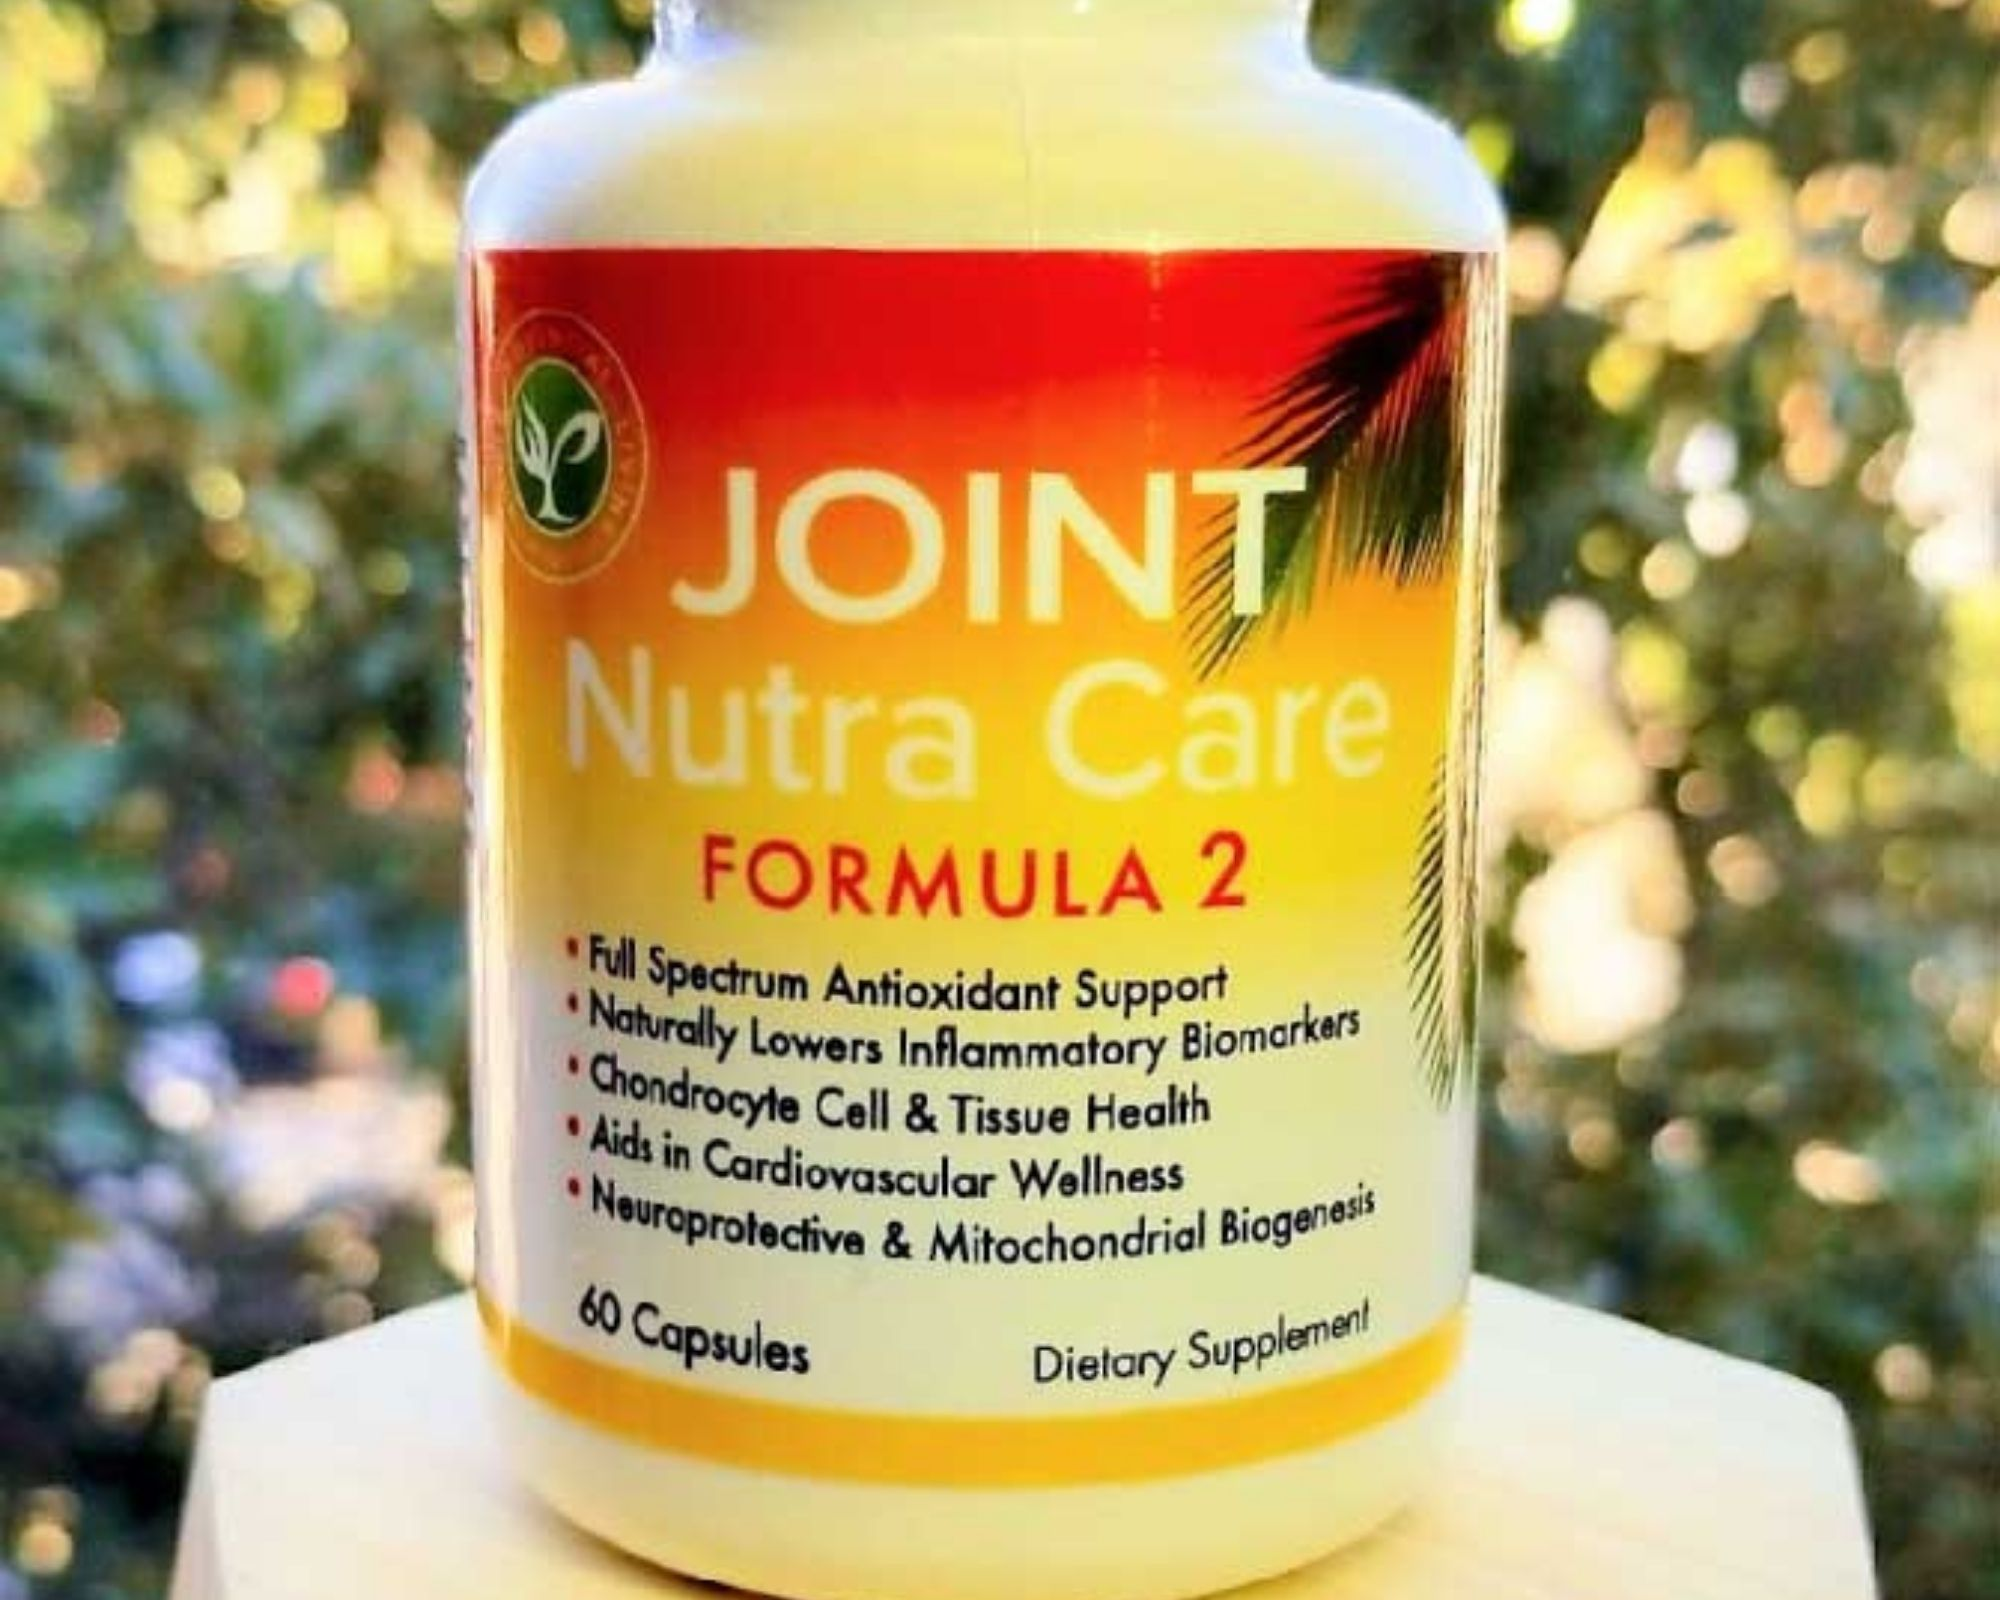 Joint Nutra Care Bottle - Nutrients in pill form